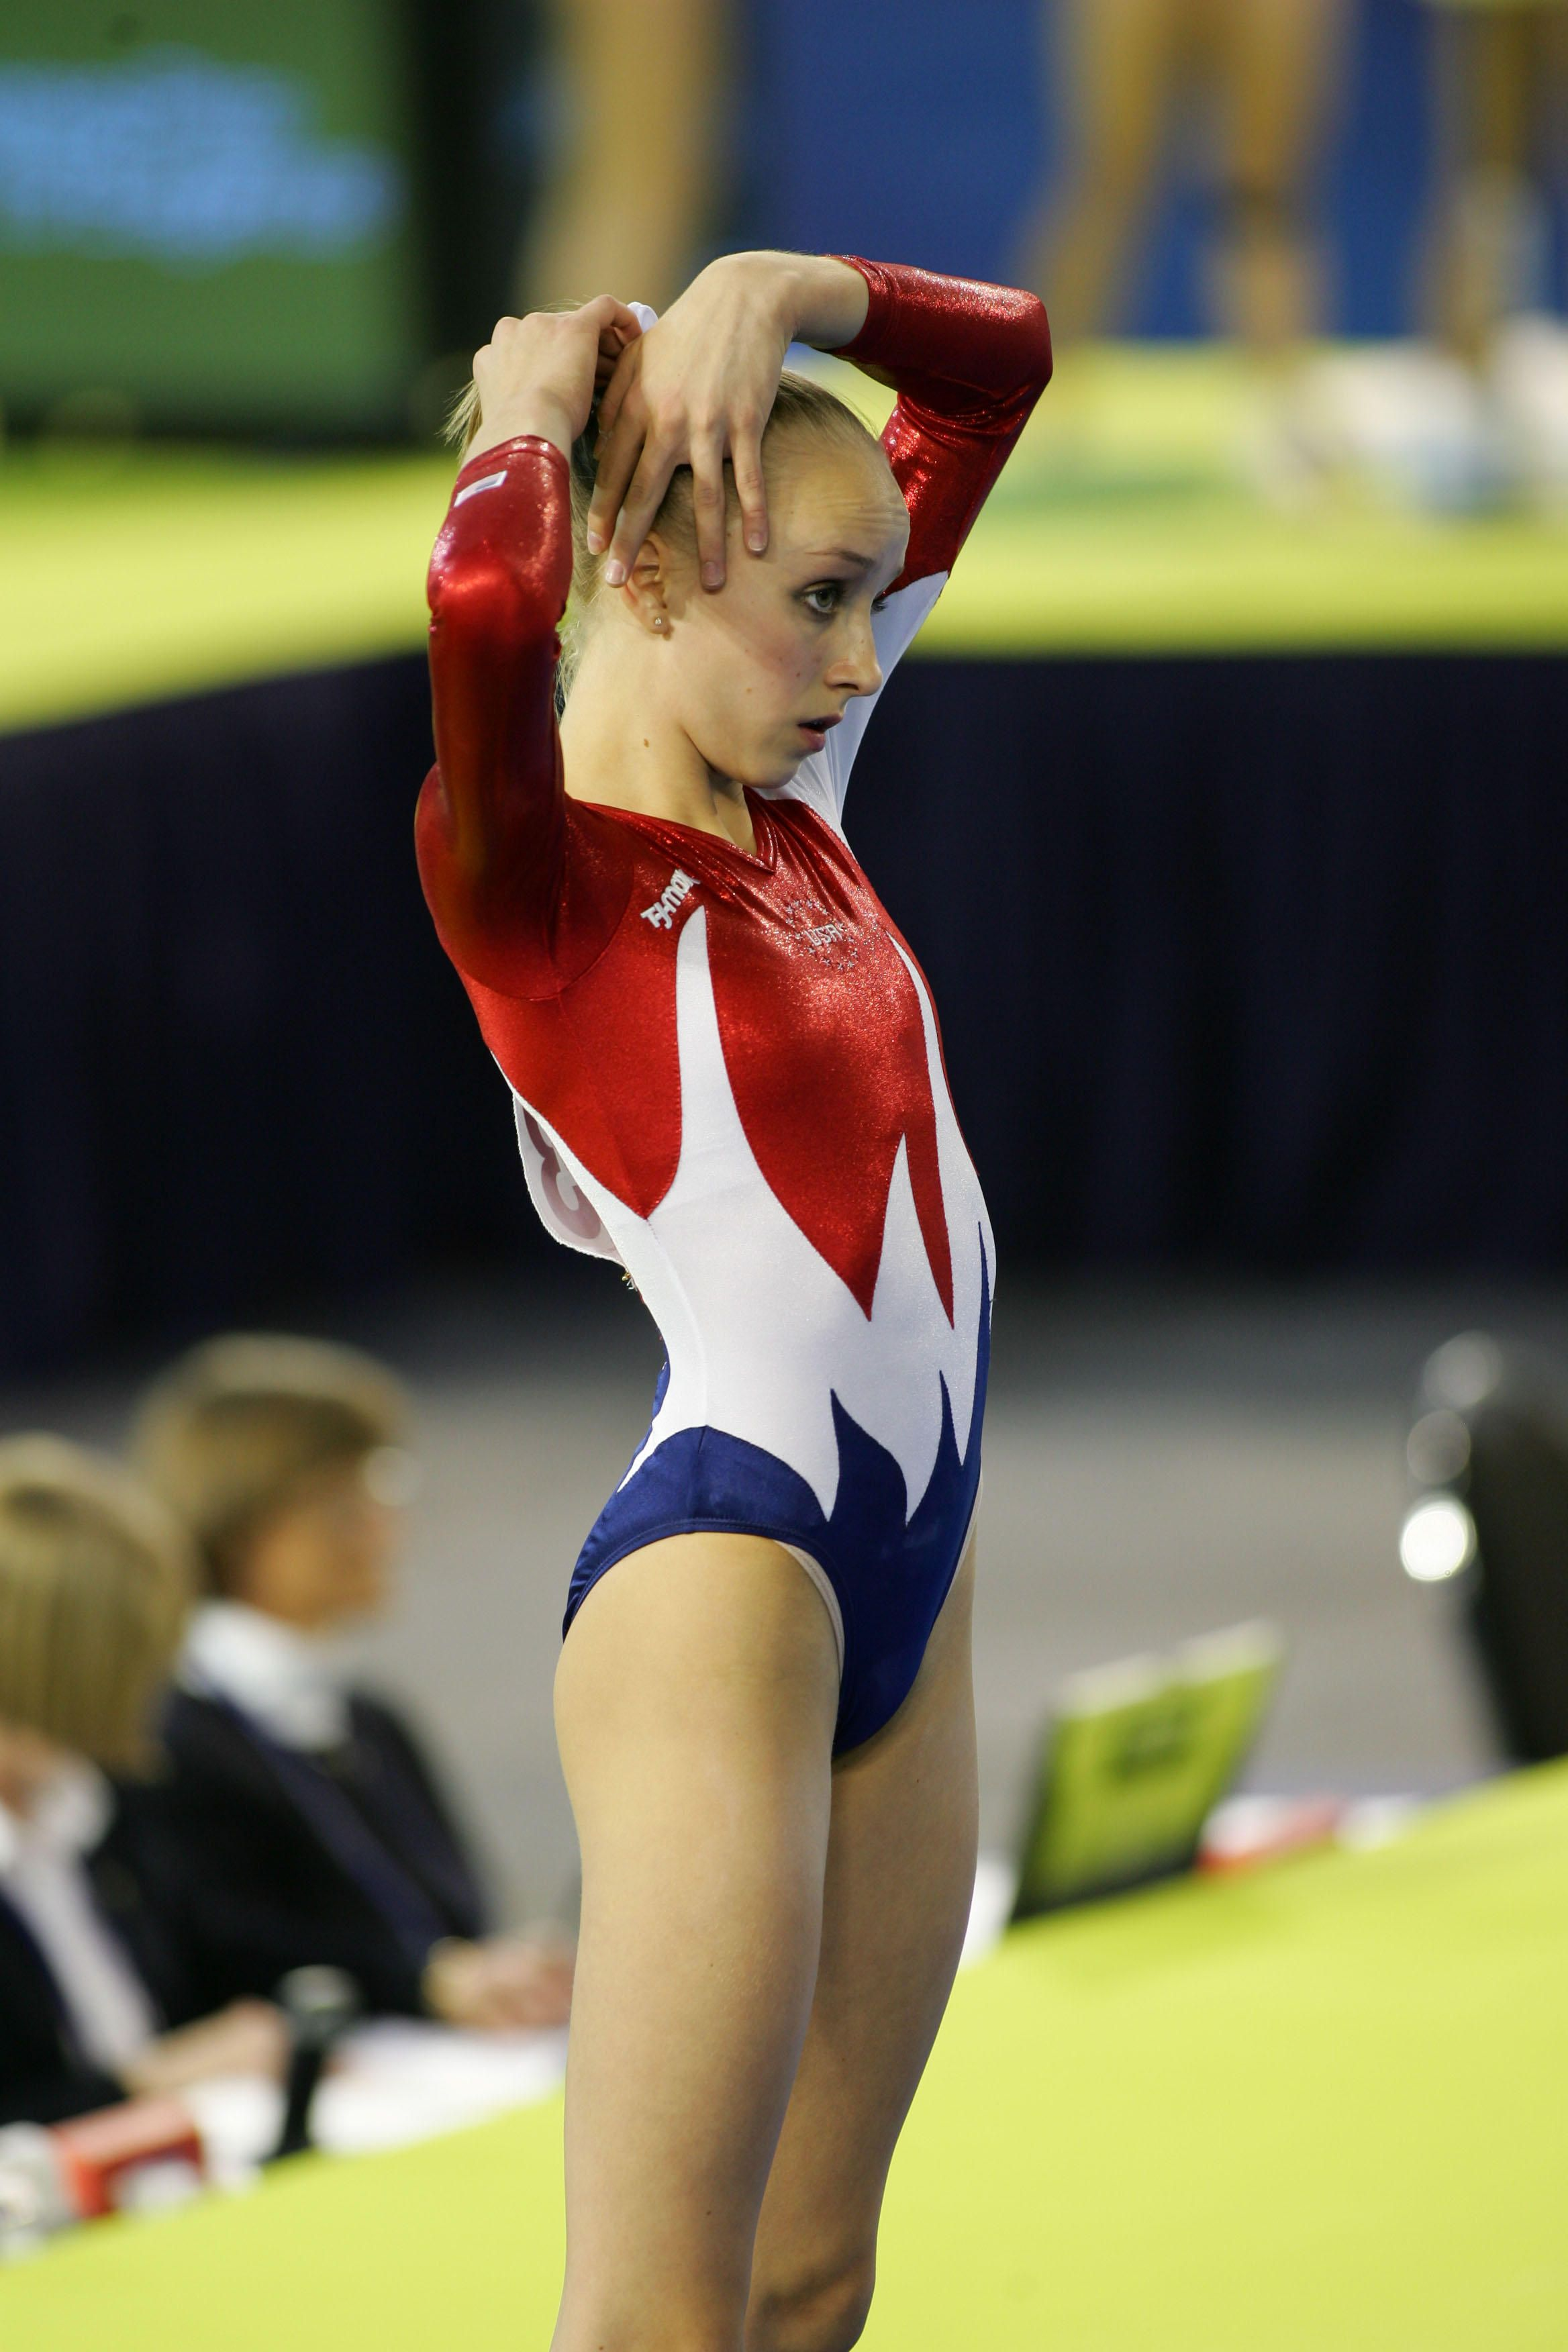 Gymnast Panties Pictures Pic